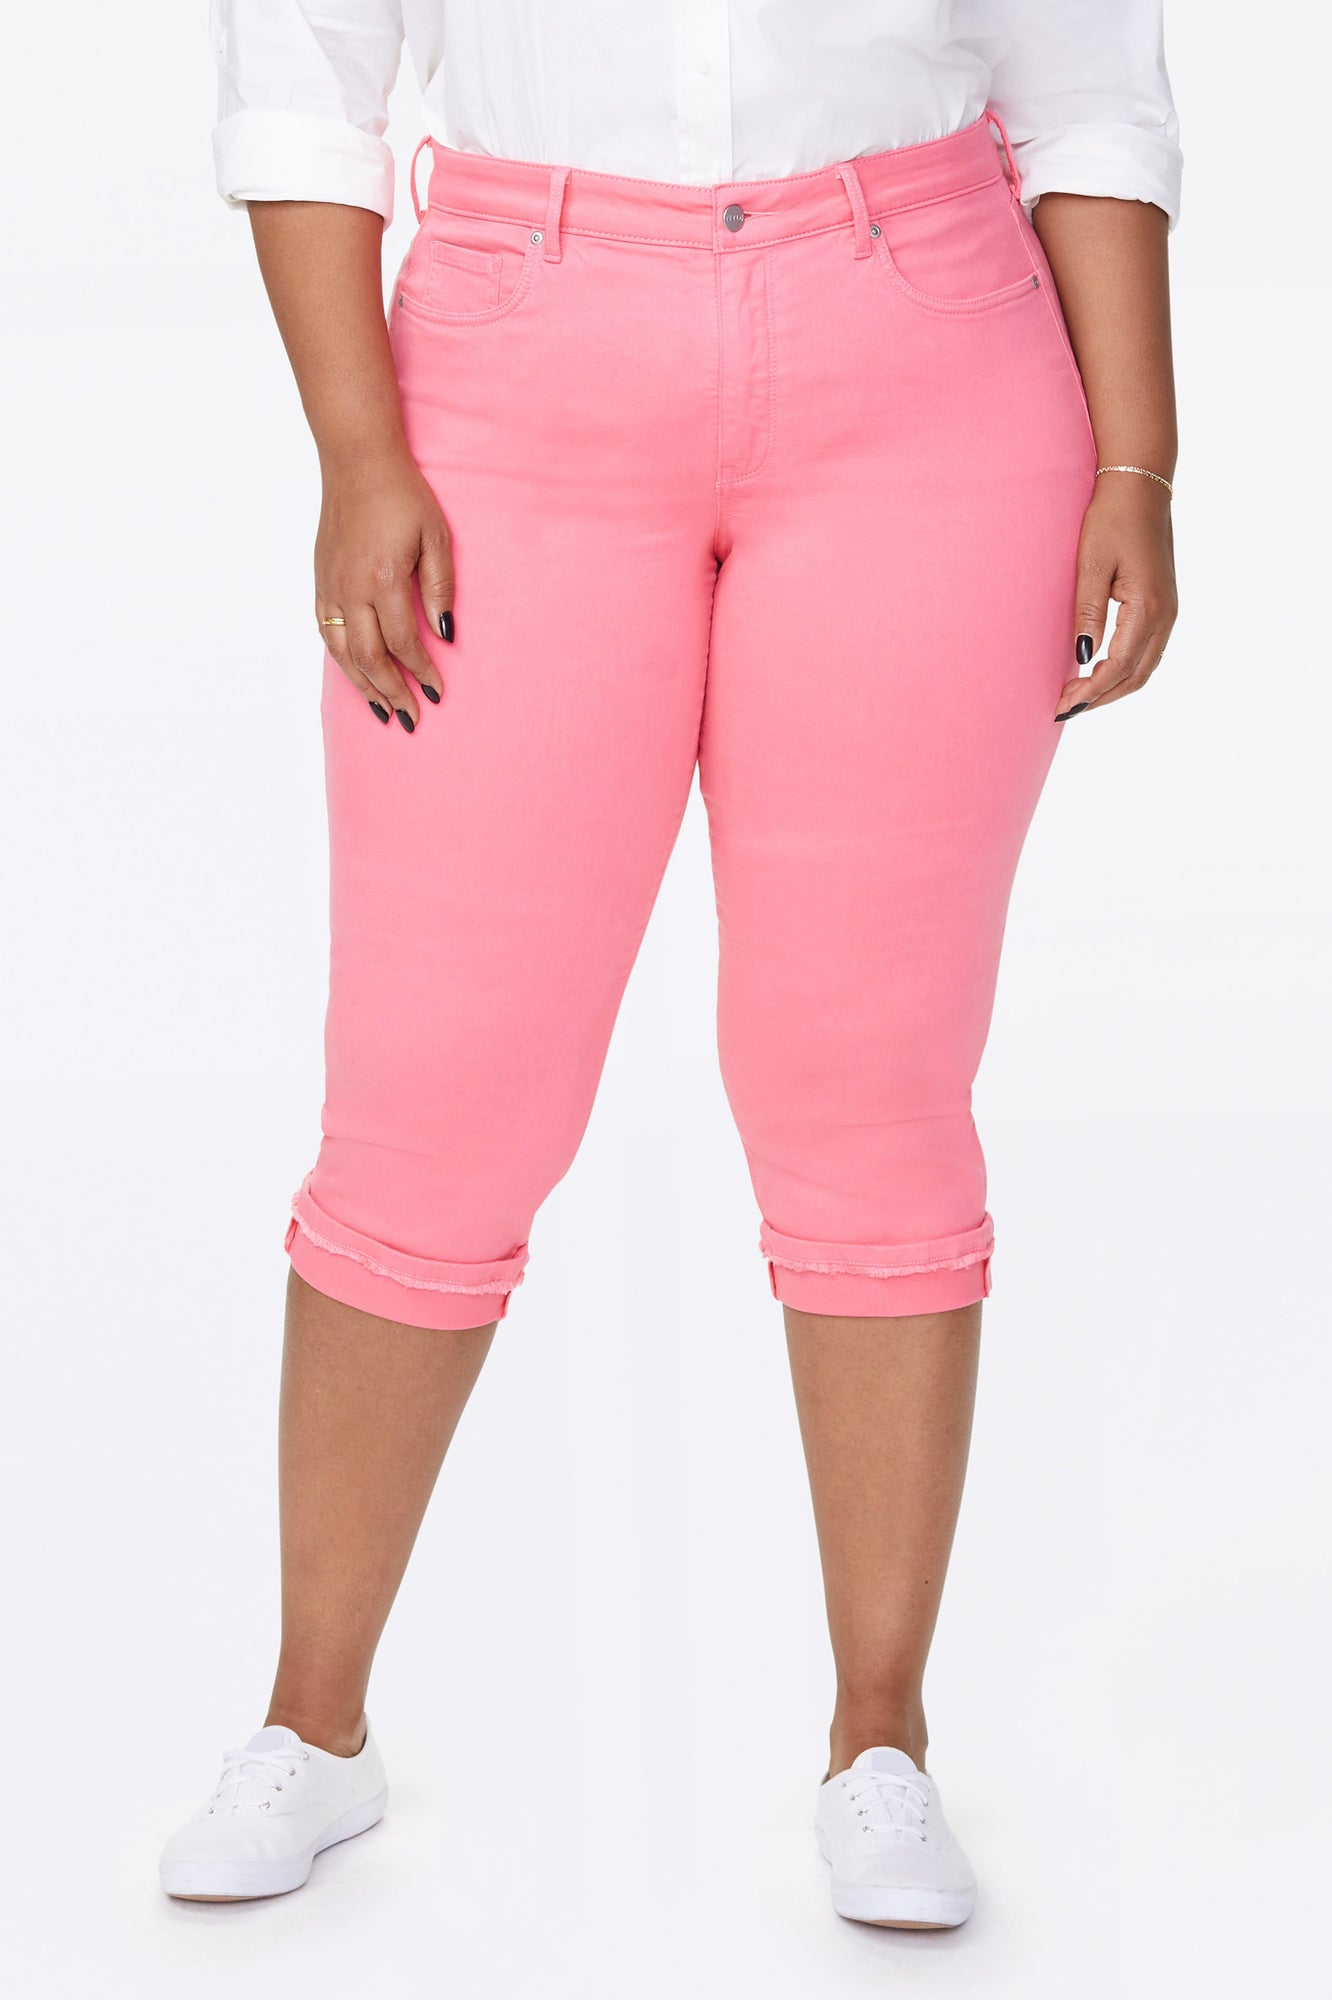 Marilyn Straight Crop Jeans In Plus Size - PINK FLAMINGO